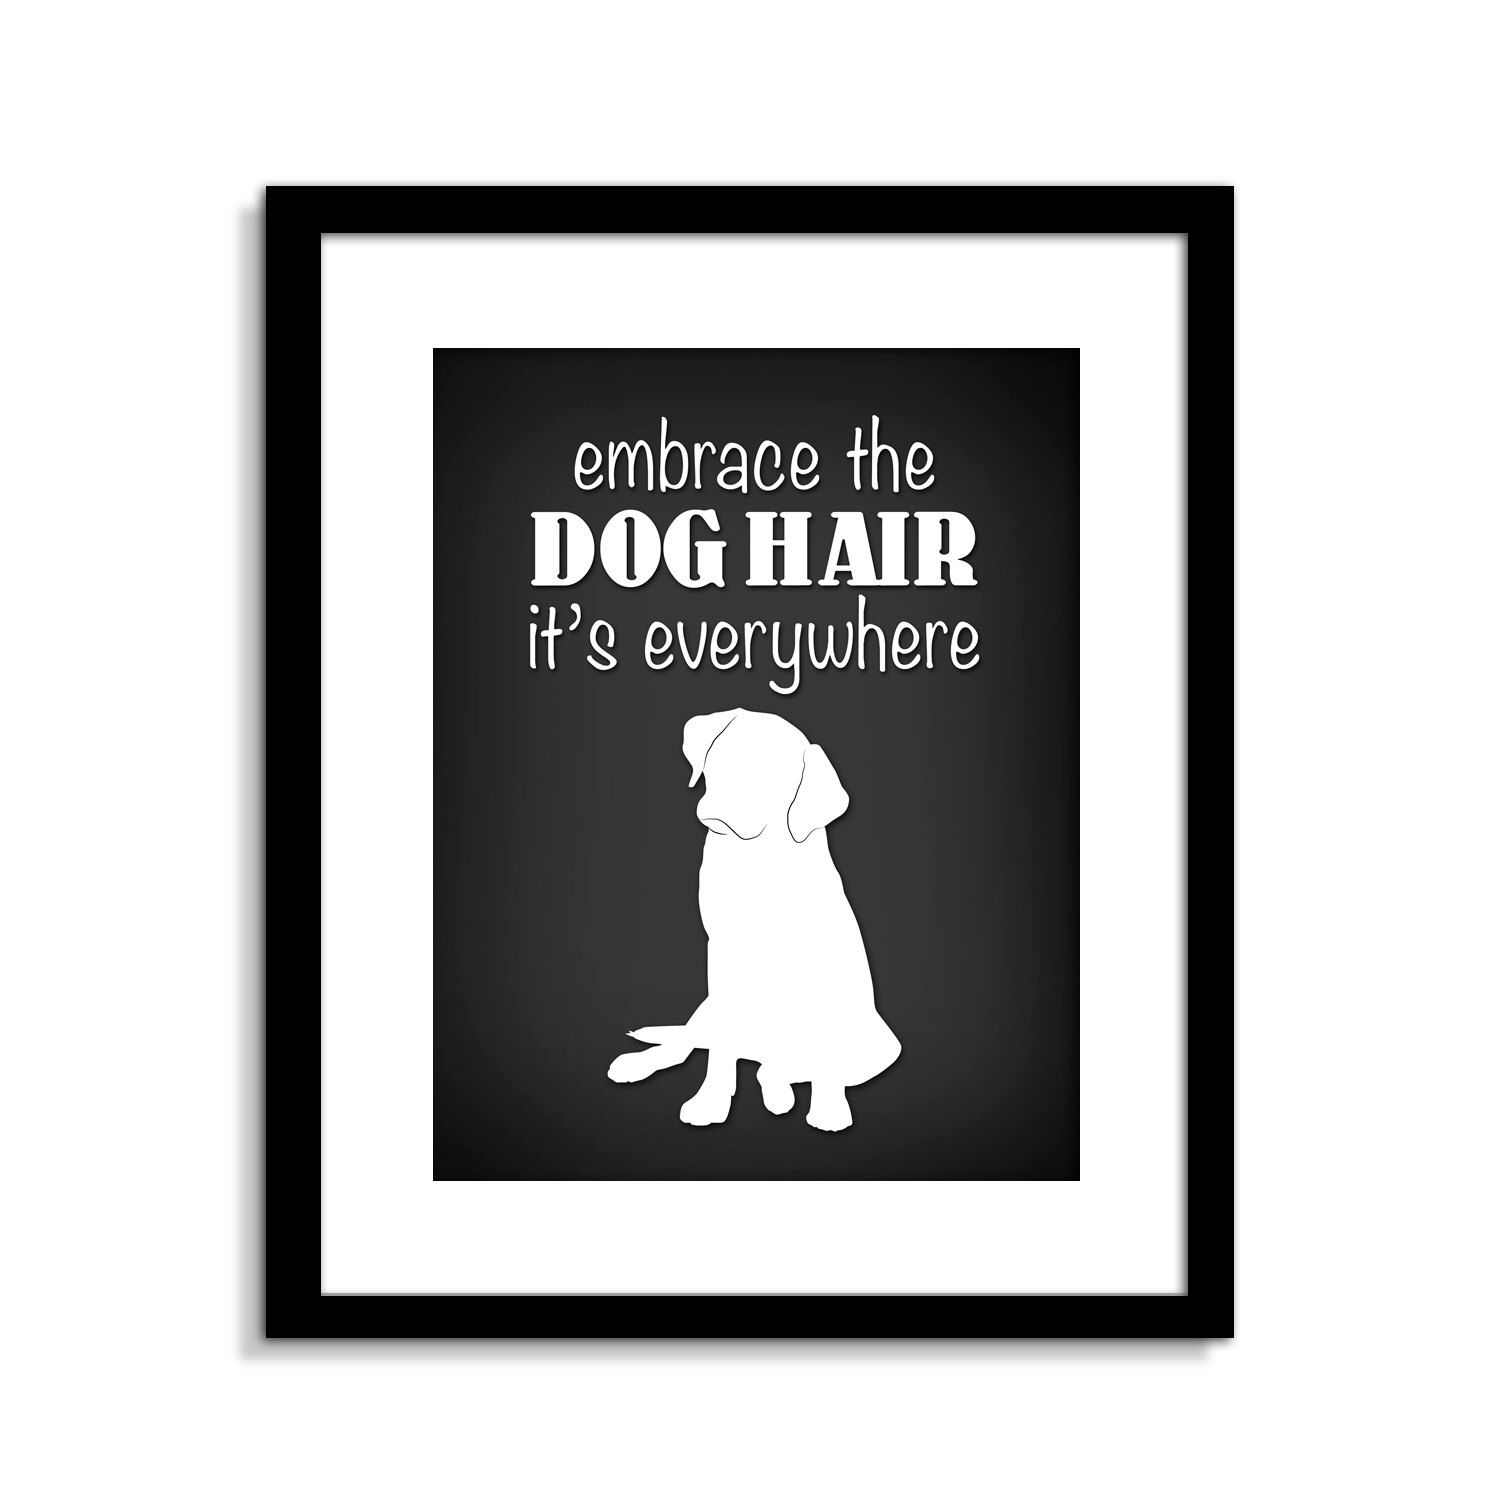 Awesome Funny Dog Wall Art, Funny Dog Sign, Embrace The Dog Hair, Dog Wall Decor,  Dog Home Decor By ClassicJanes On Etsy ...